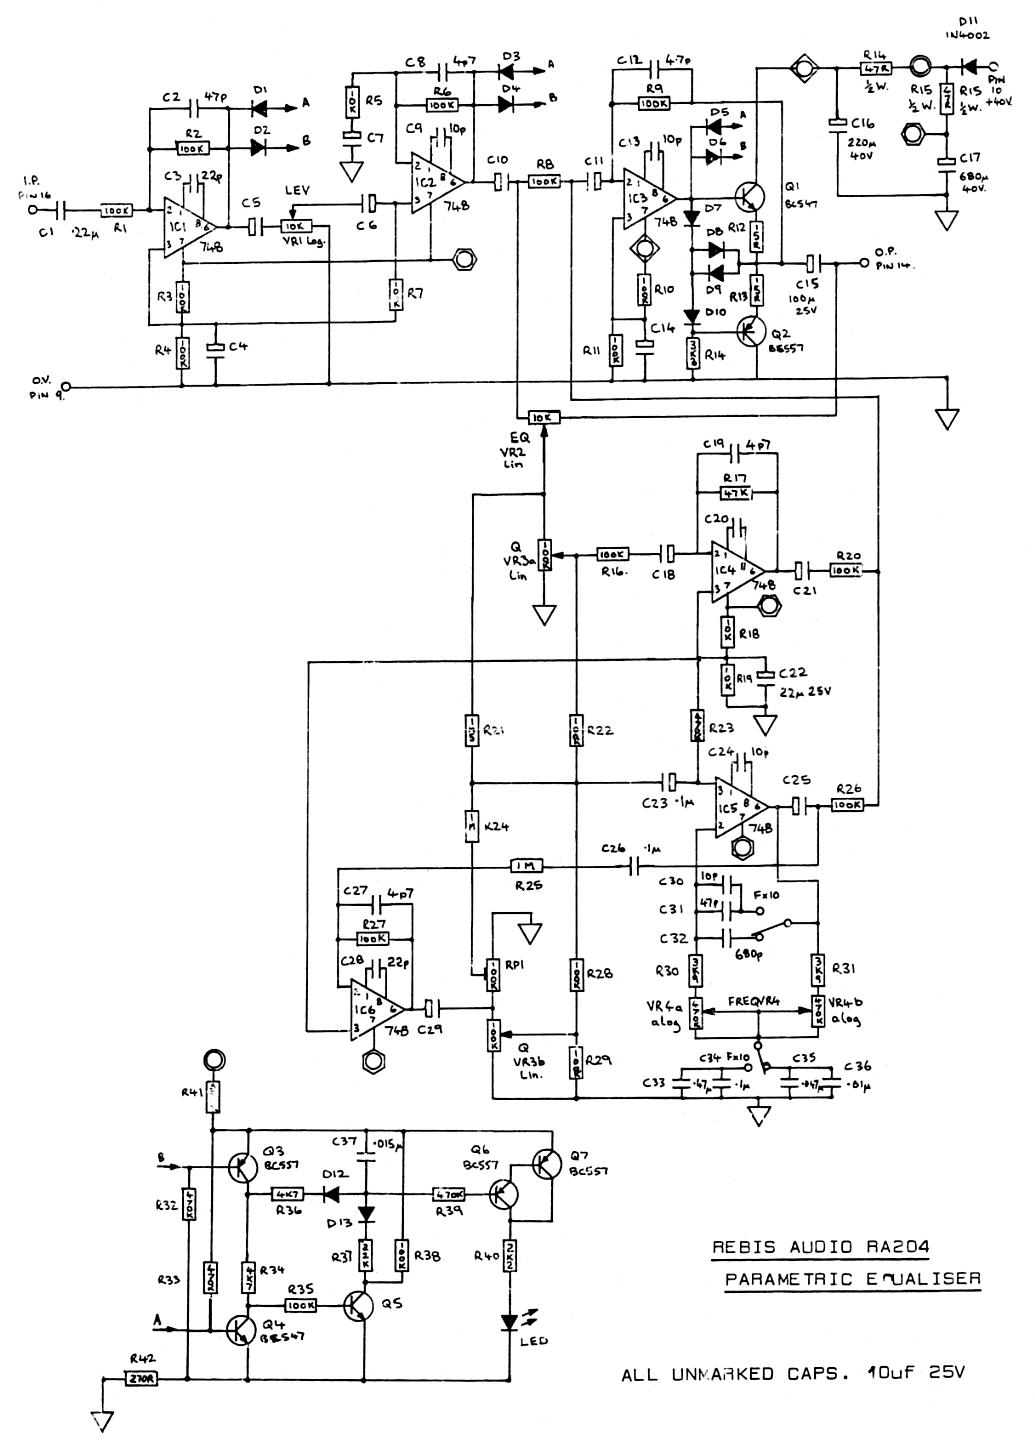 rebis audio ra204 parametric eq cct circuit dia's fordson dexta wiring diagram at honlapkeszites.co